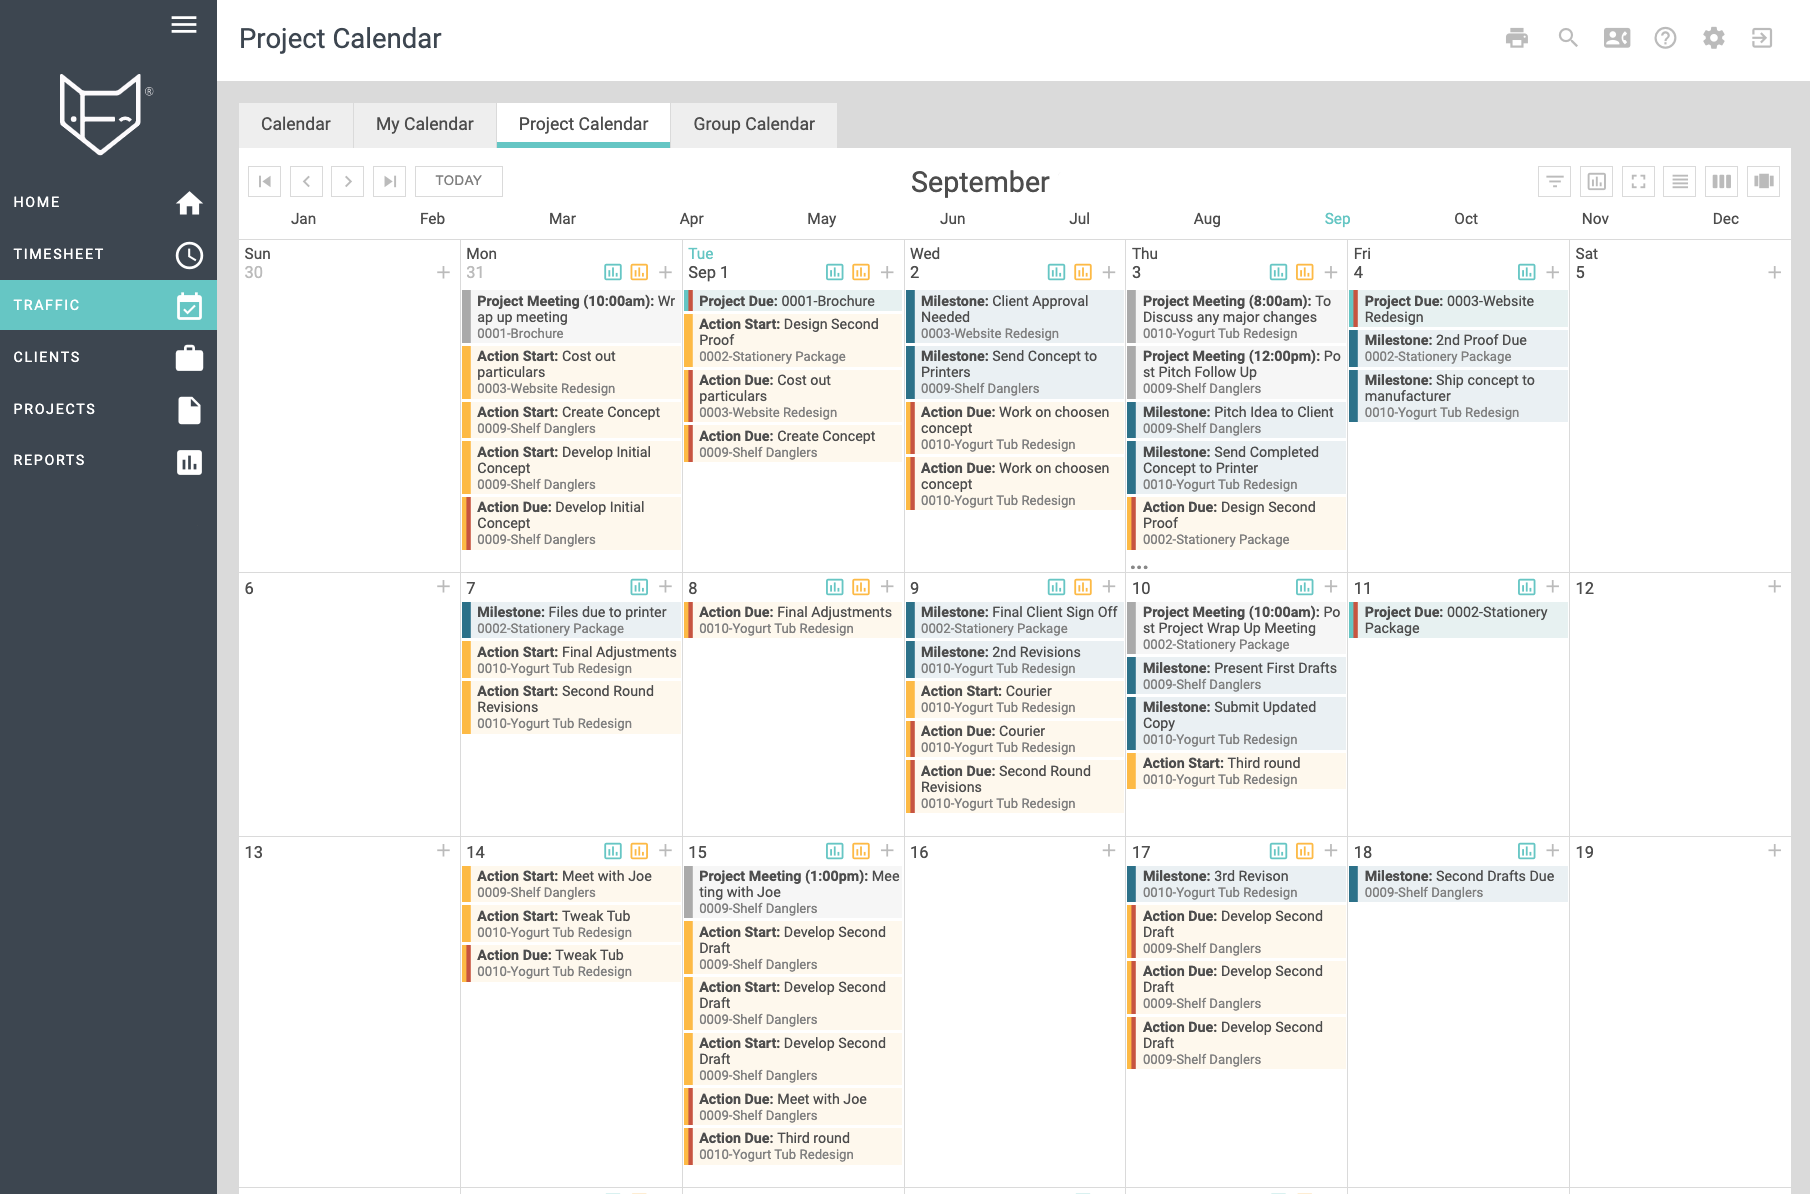 Project Calendars: Calendar view of your project schedules - don't let deadlines slip past.